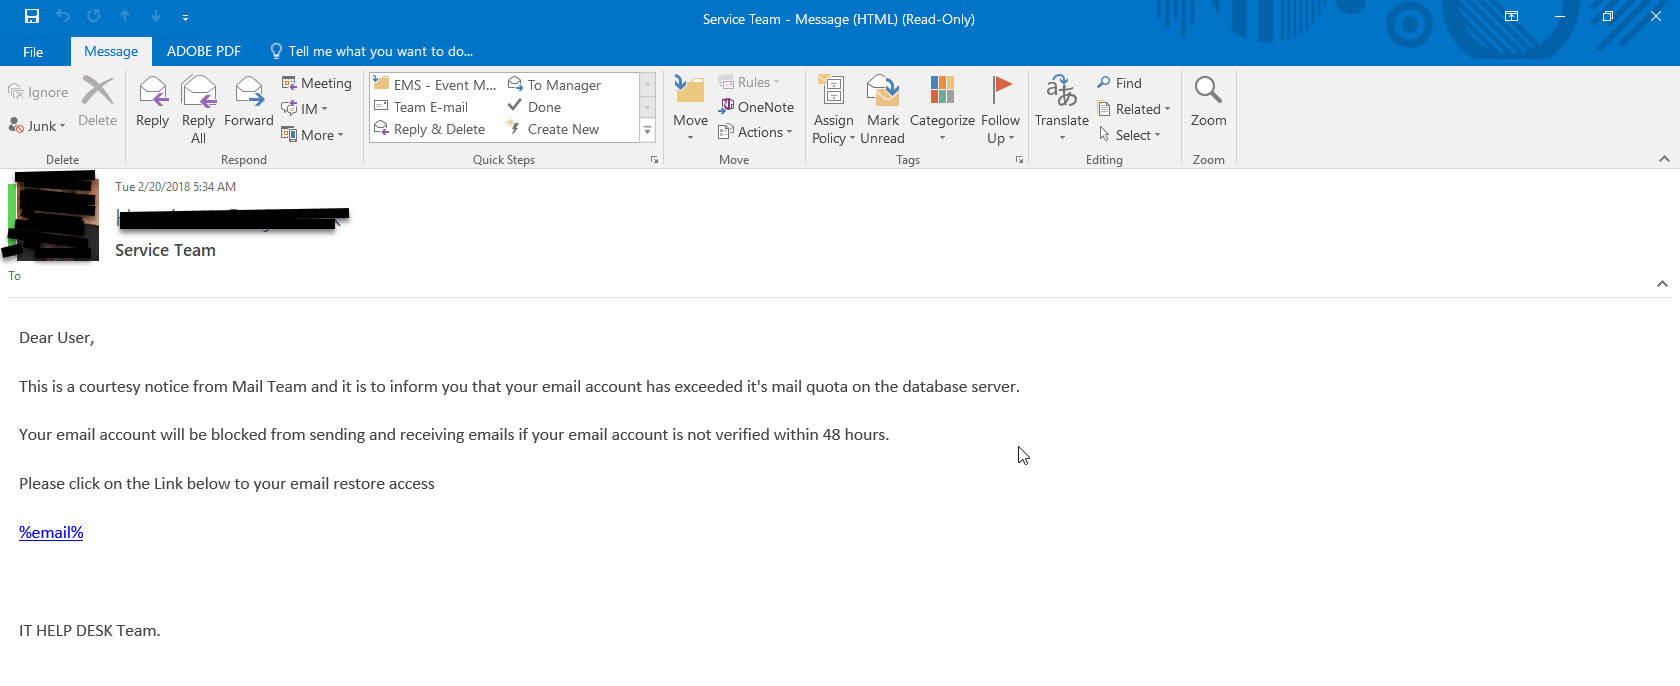 Message Service Team phishing example